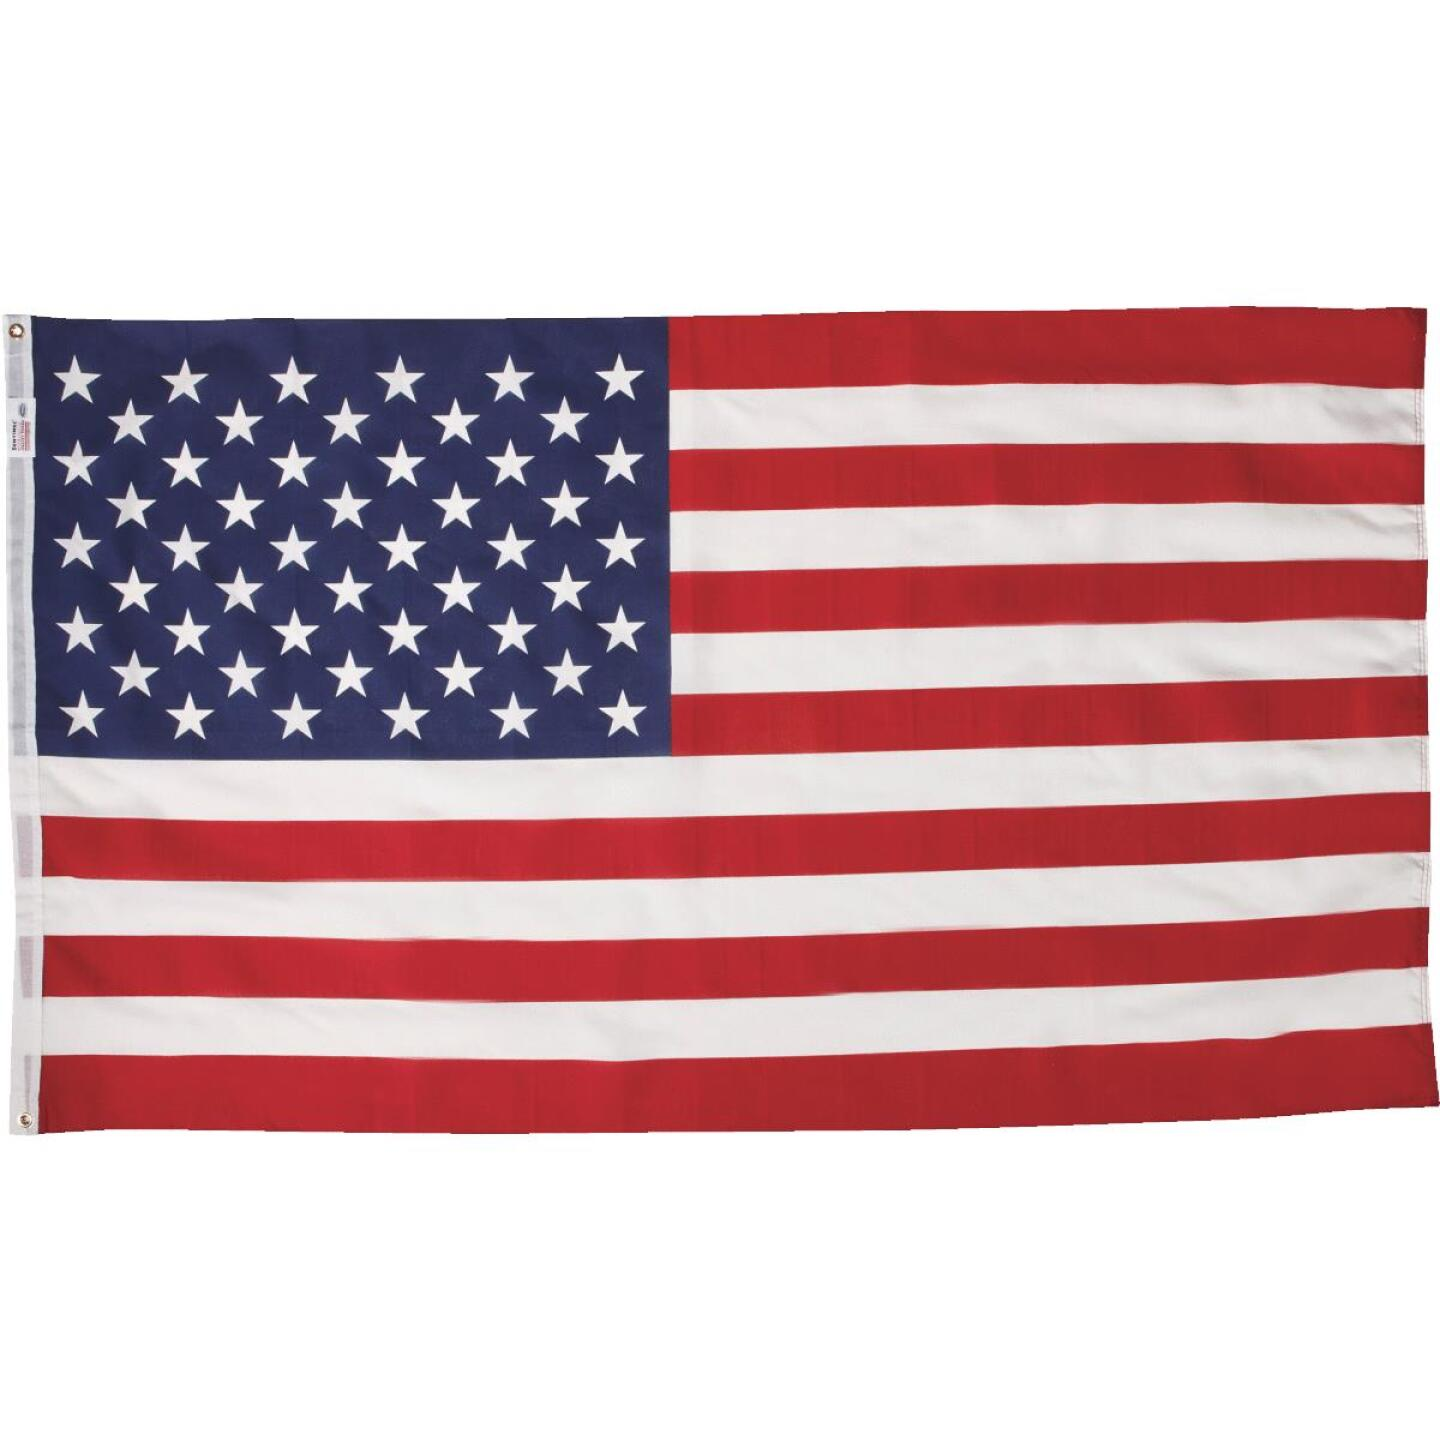 Valley Forge 3 Ft. x 5 Ft. Polycotton American Flag Image 1